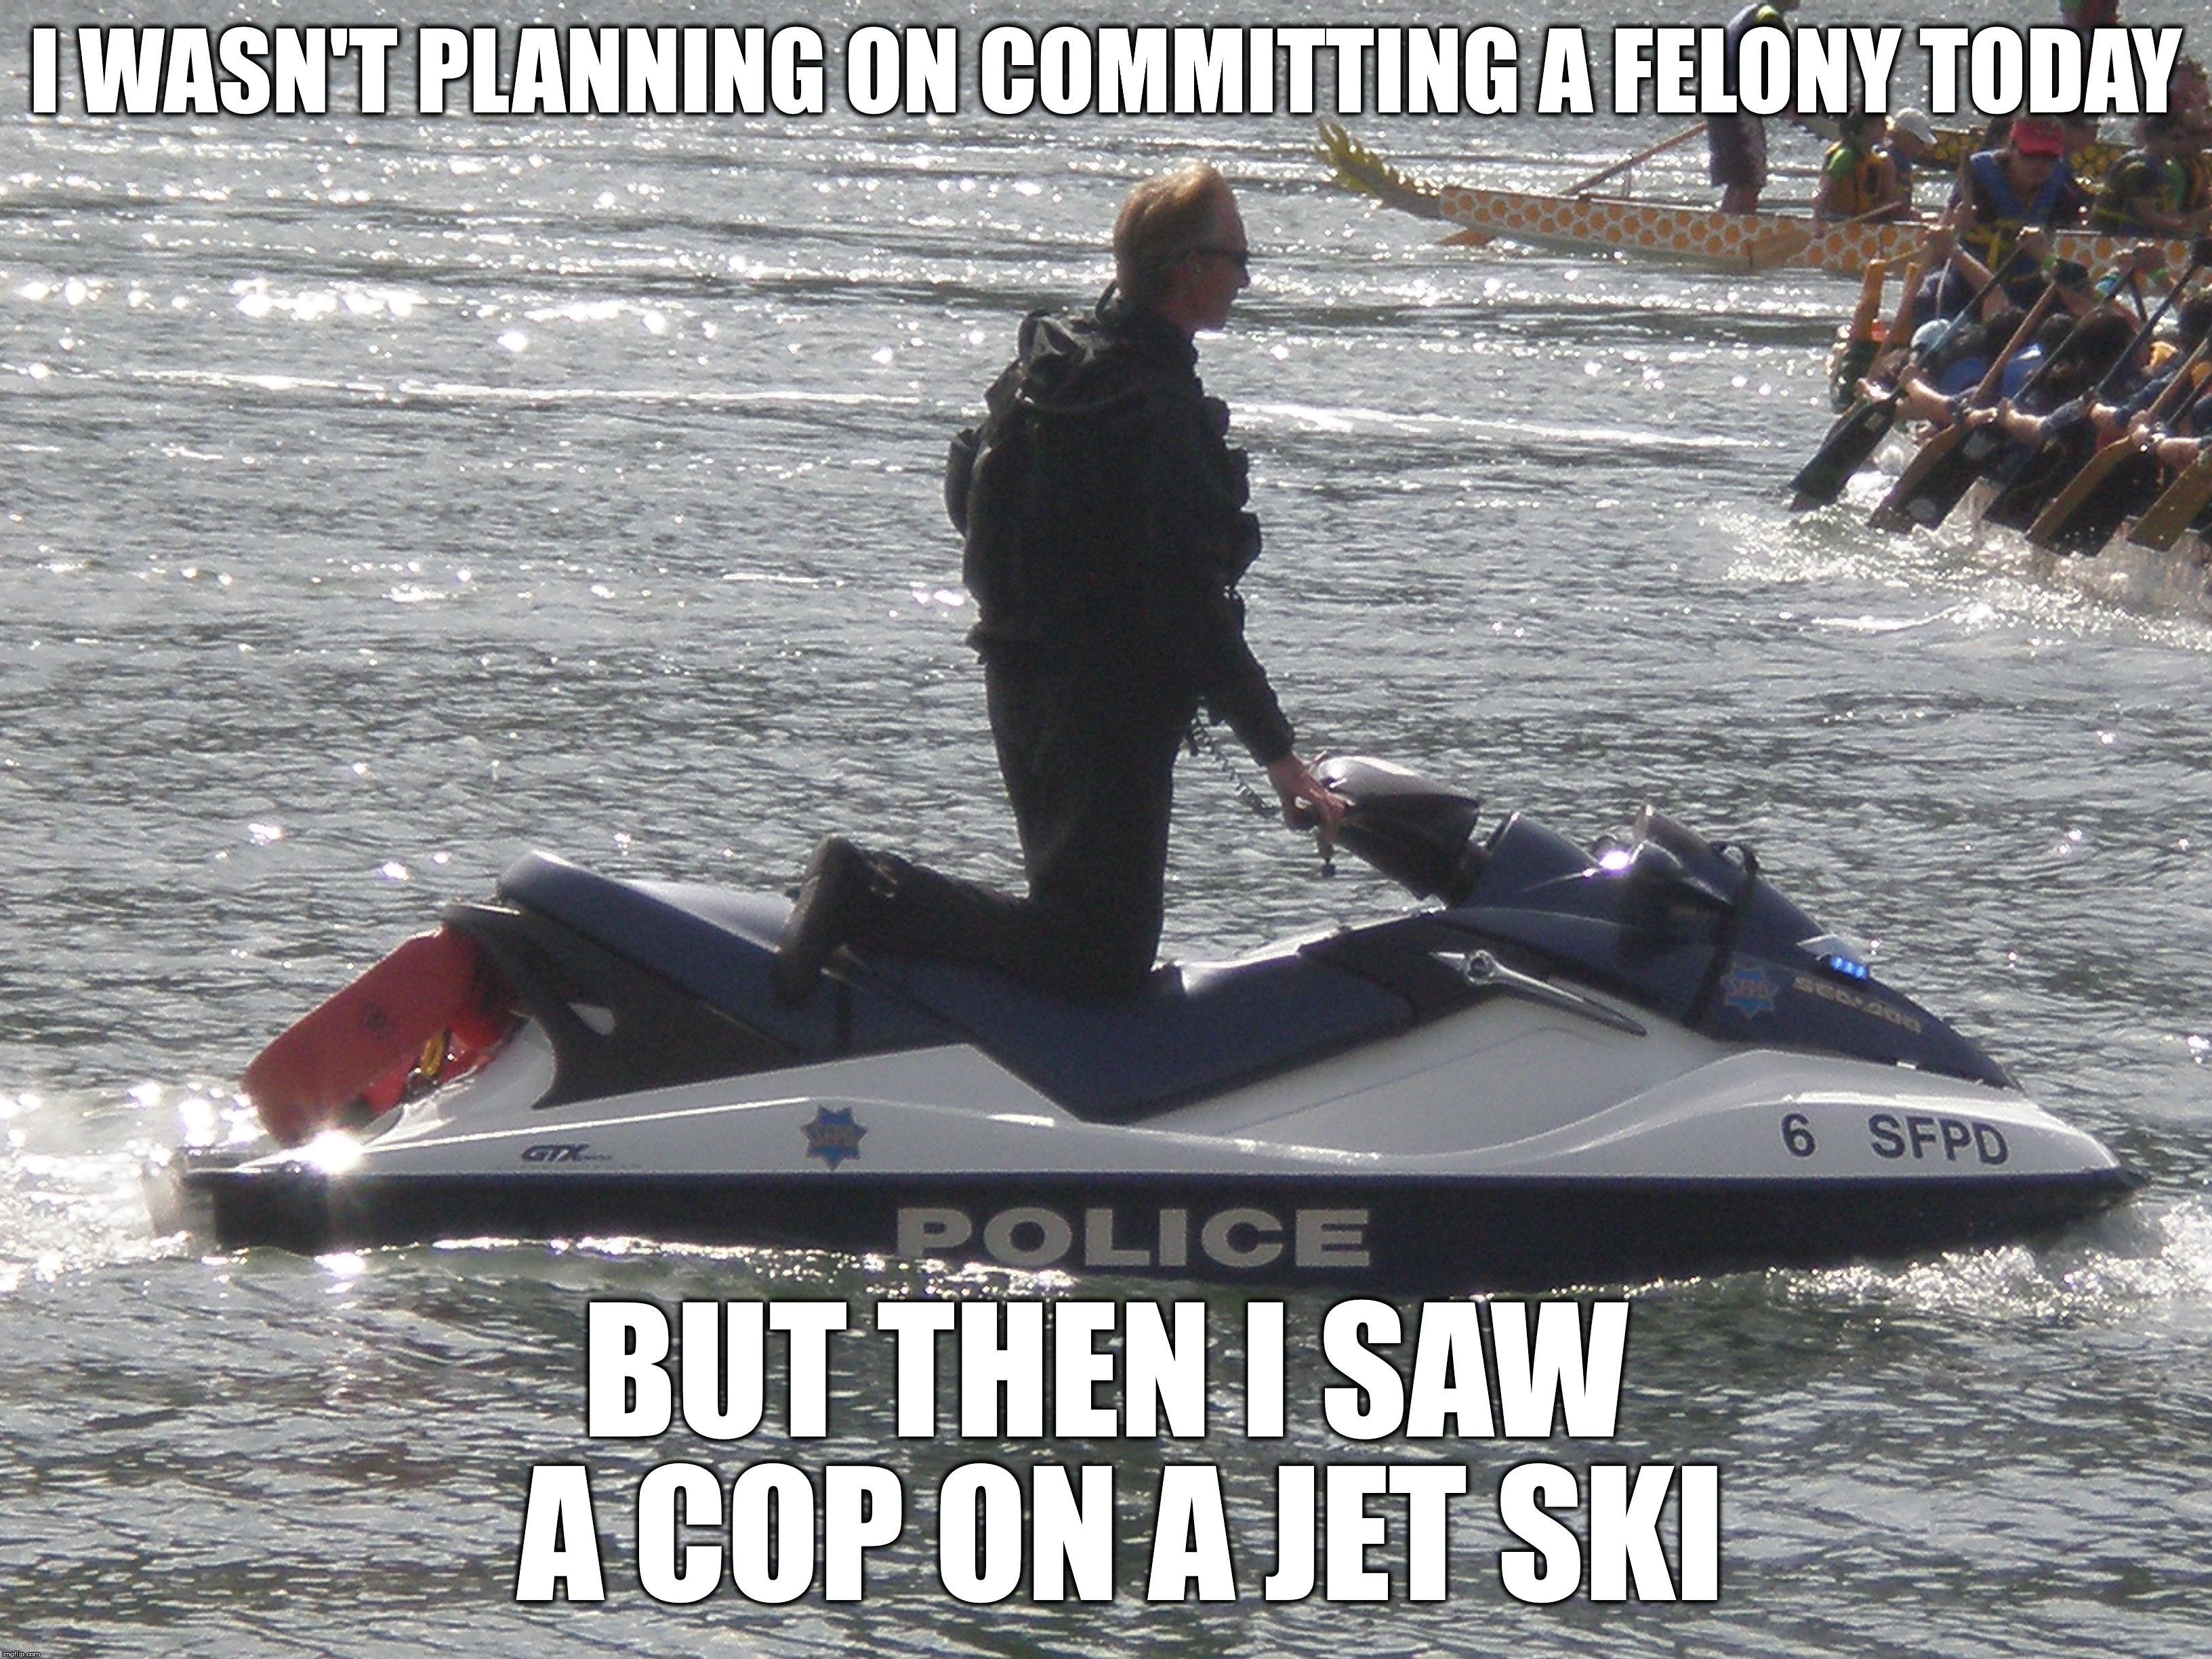 Cop On A Jet Ski | I WASN'T PLANNING ON COMMITTING A FELONY TODAY BUT THEN I SAW A COP ON A JET SKI | image tagged in cop,jet ski,water,felony | made w/ Imgflip meme maker